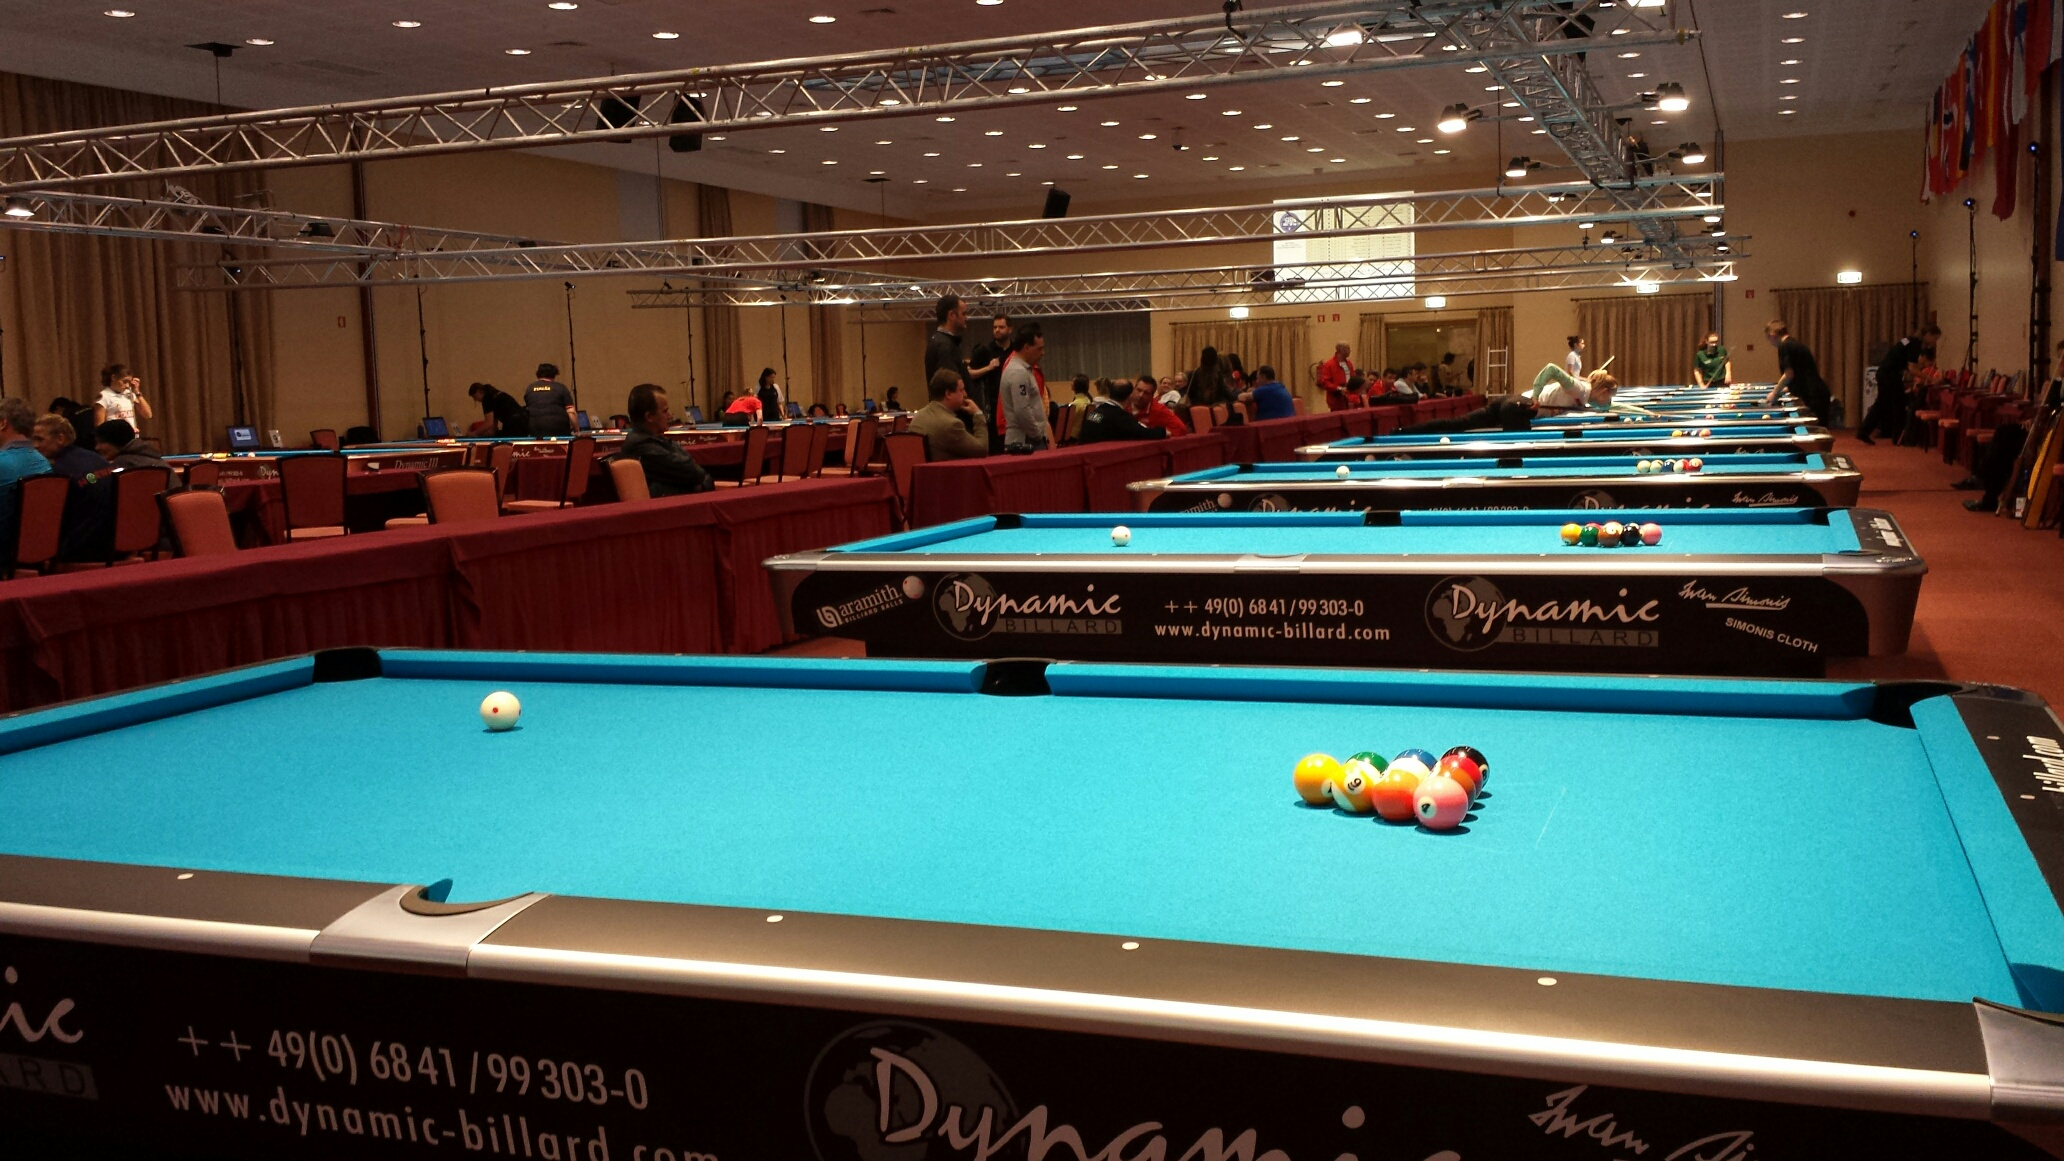 Image Result For Ball Pool Auto Wina